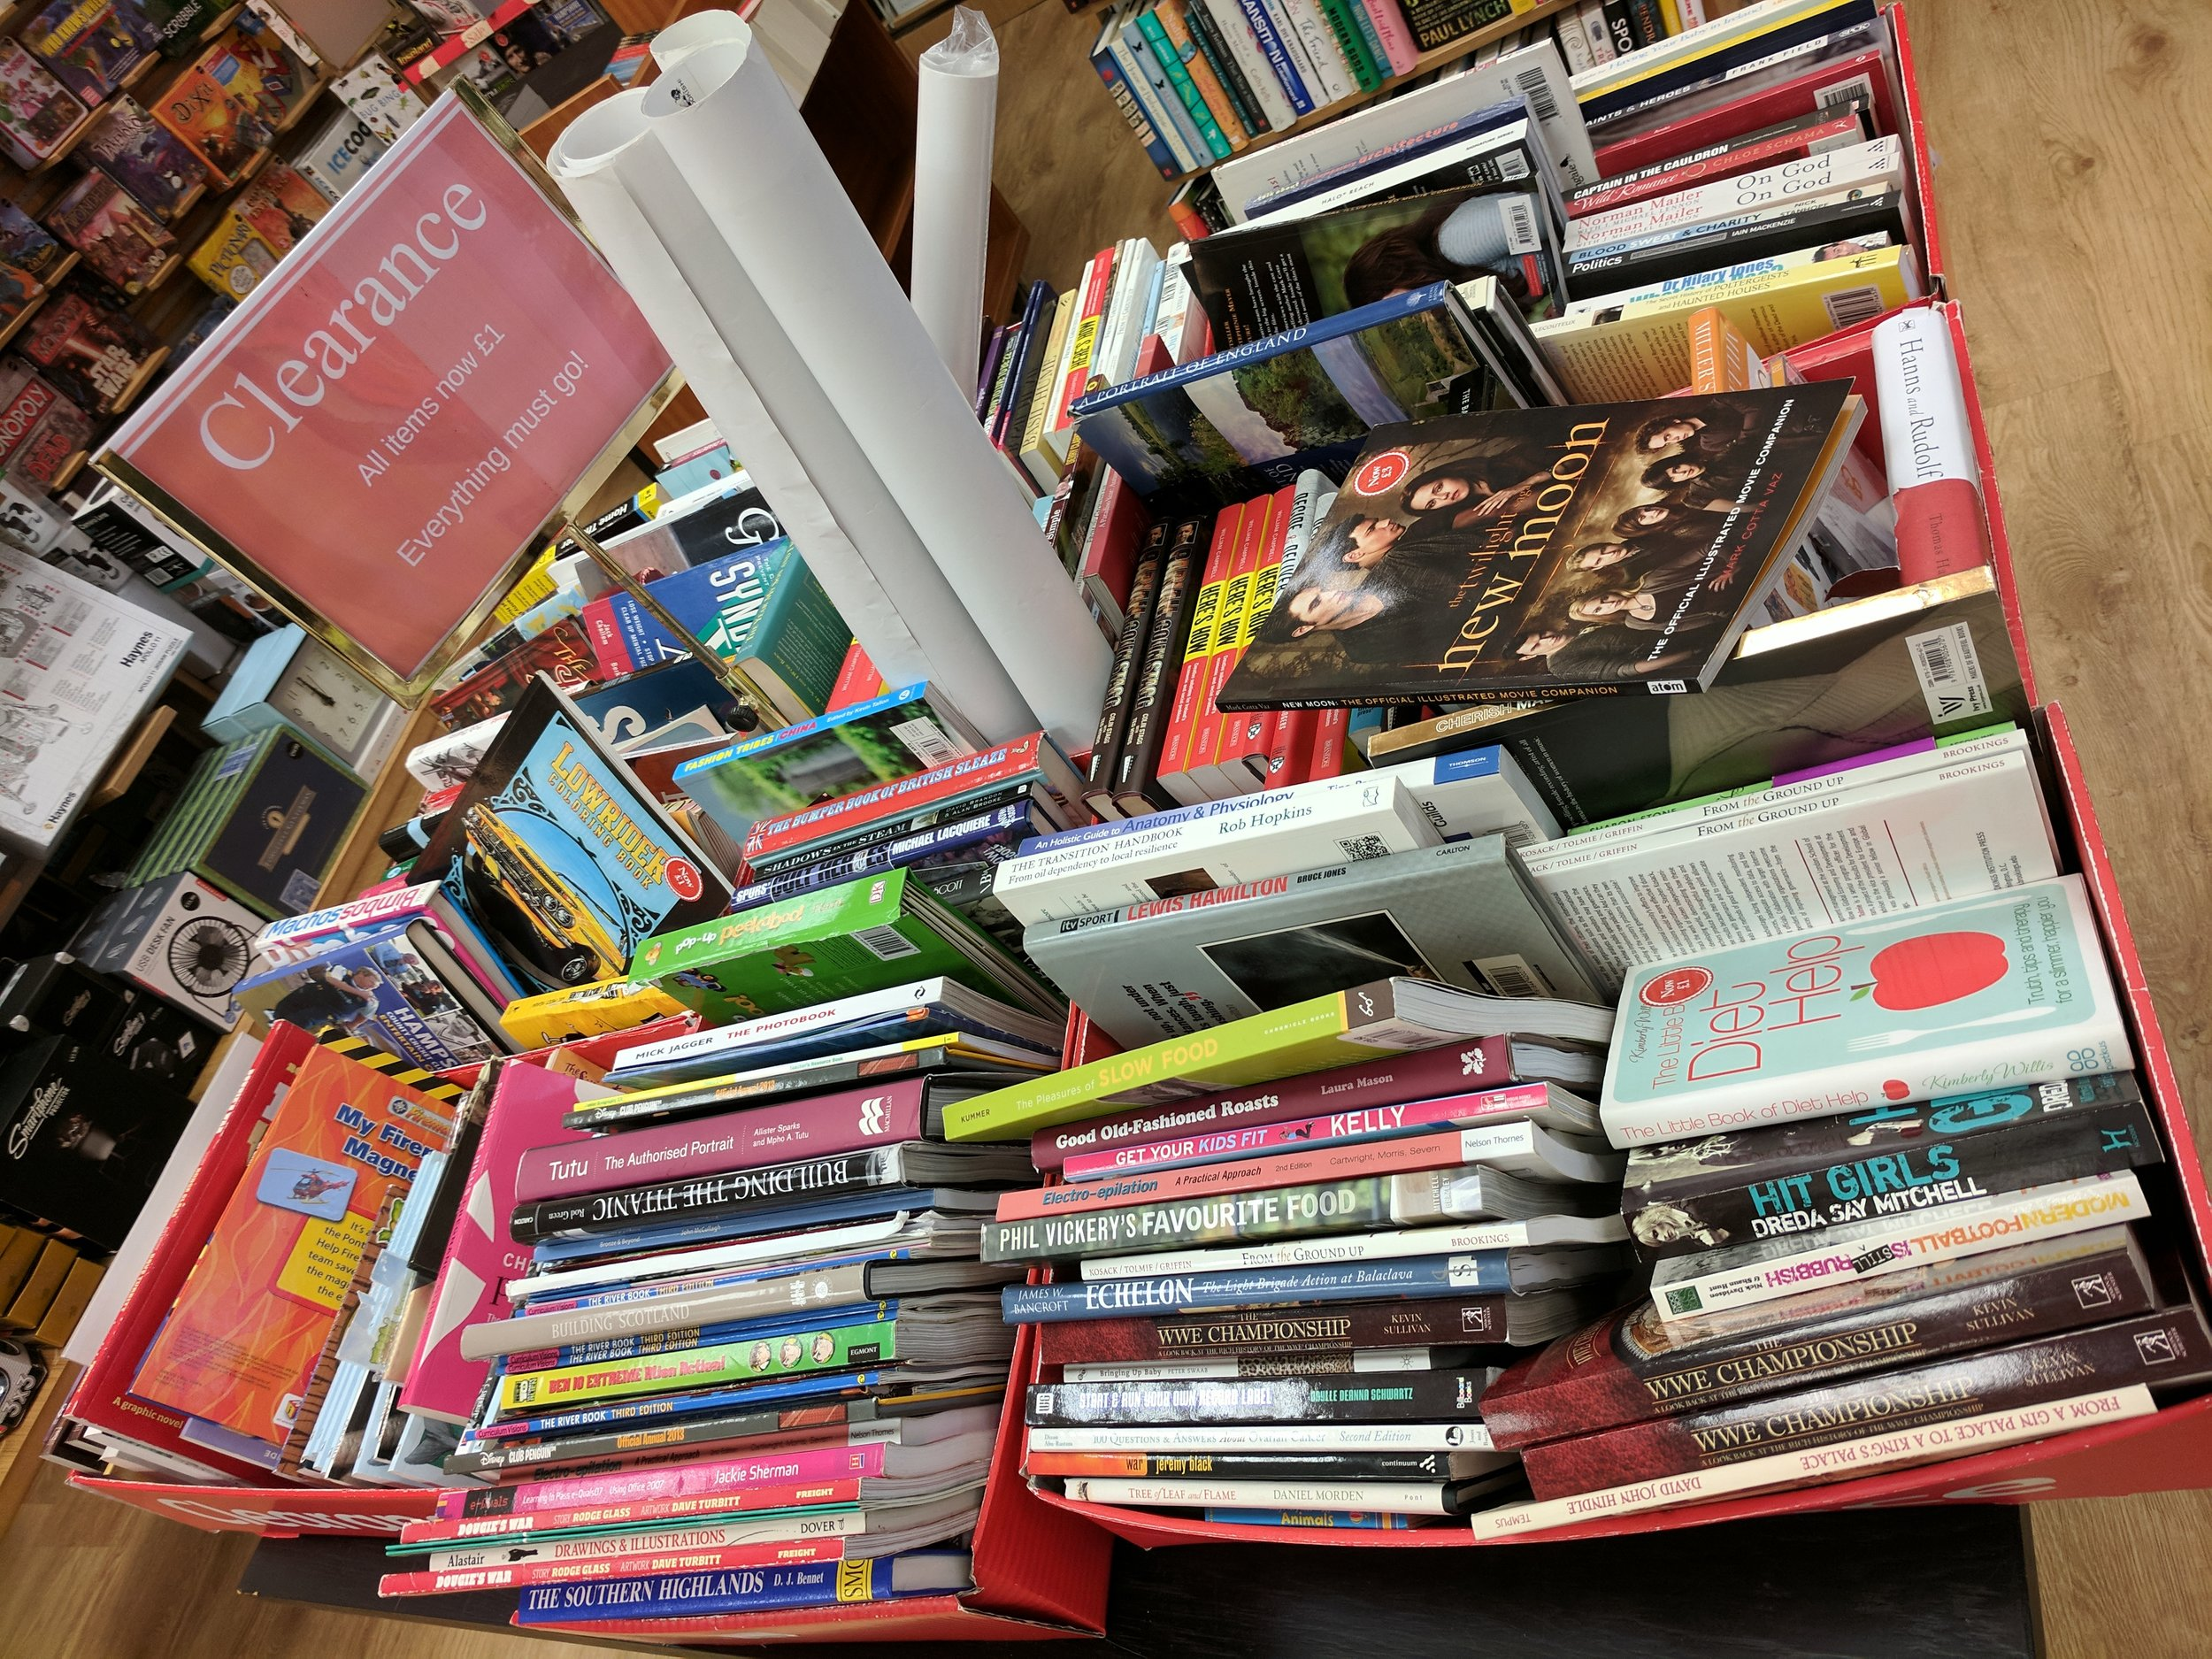 A now regular sight on the Waterstones shop floor - the bargain bin appeared from mid 2017 onwards.